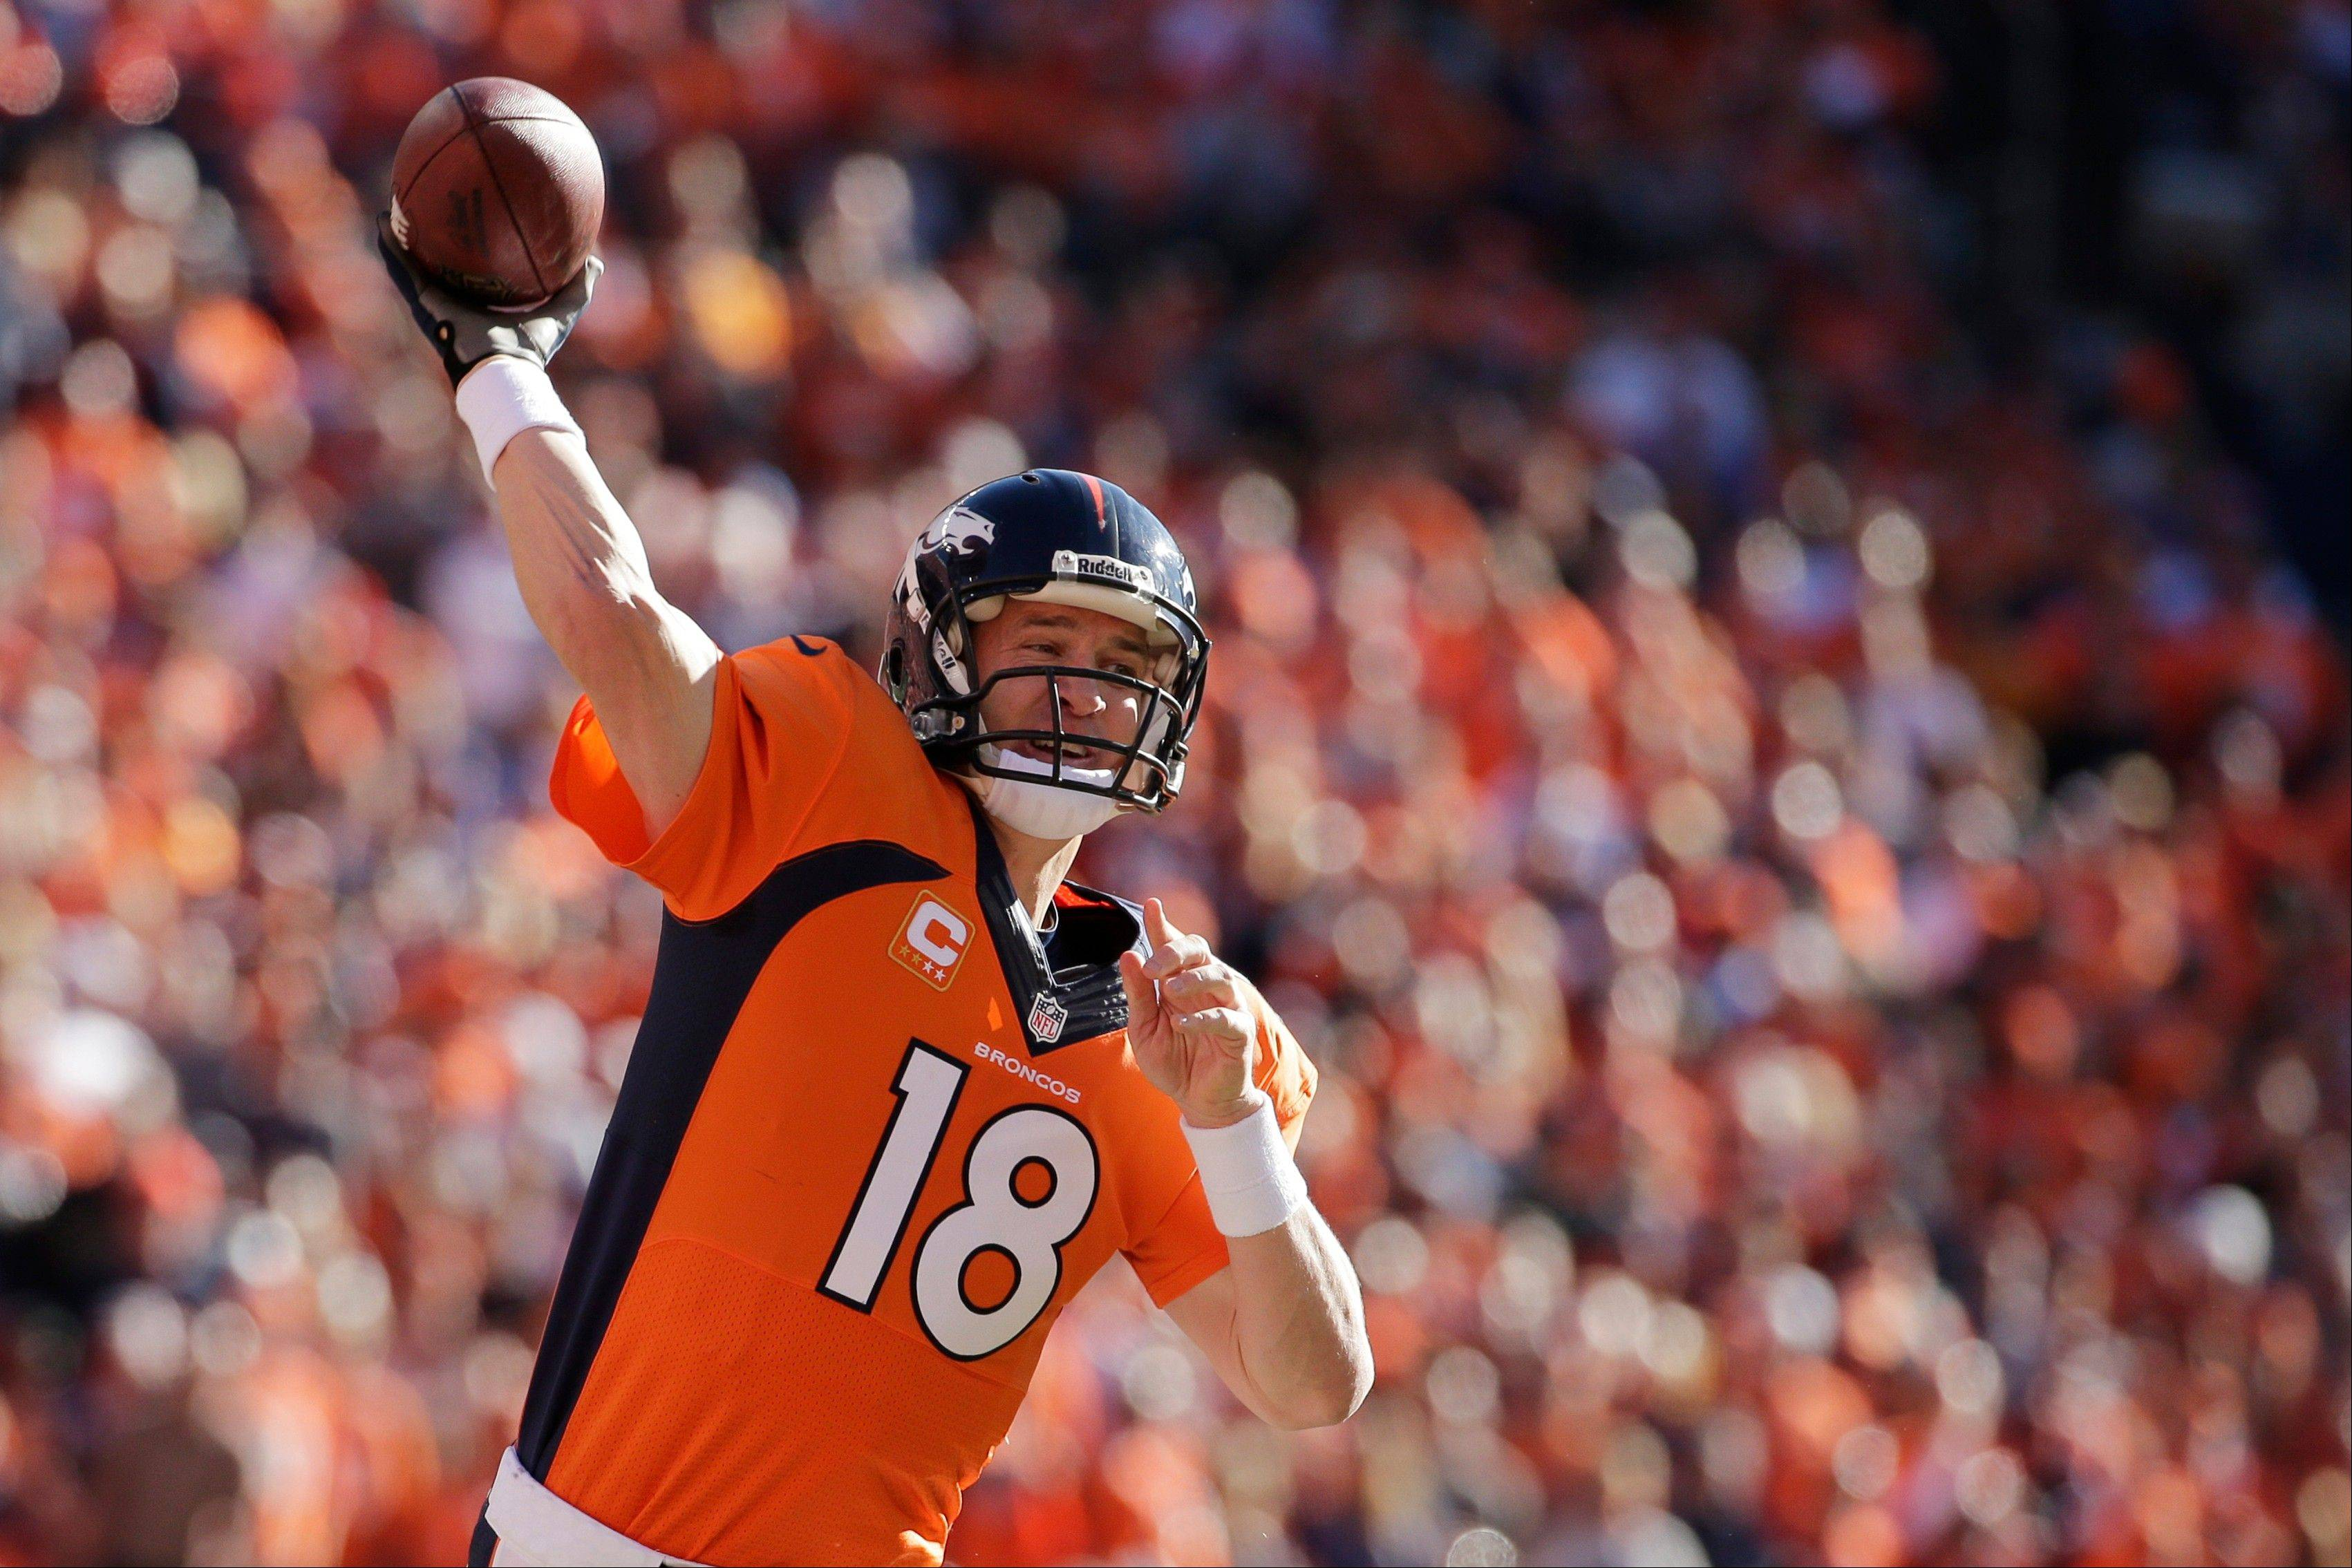 Denver Broncos quarterback Peyton Manning passes the ball during the first half of the AFC Championship NFL playoff football game against the New England Patriots in Denver, Sunday, Jan. 19, 2014.